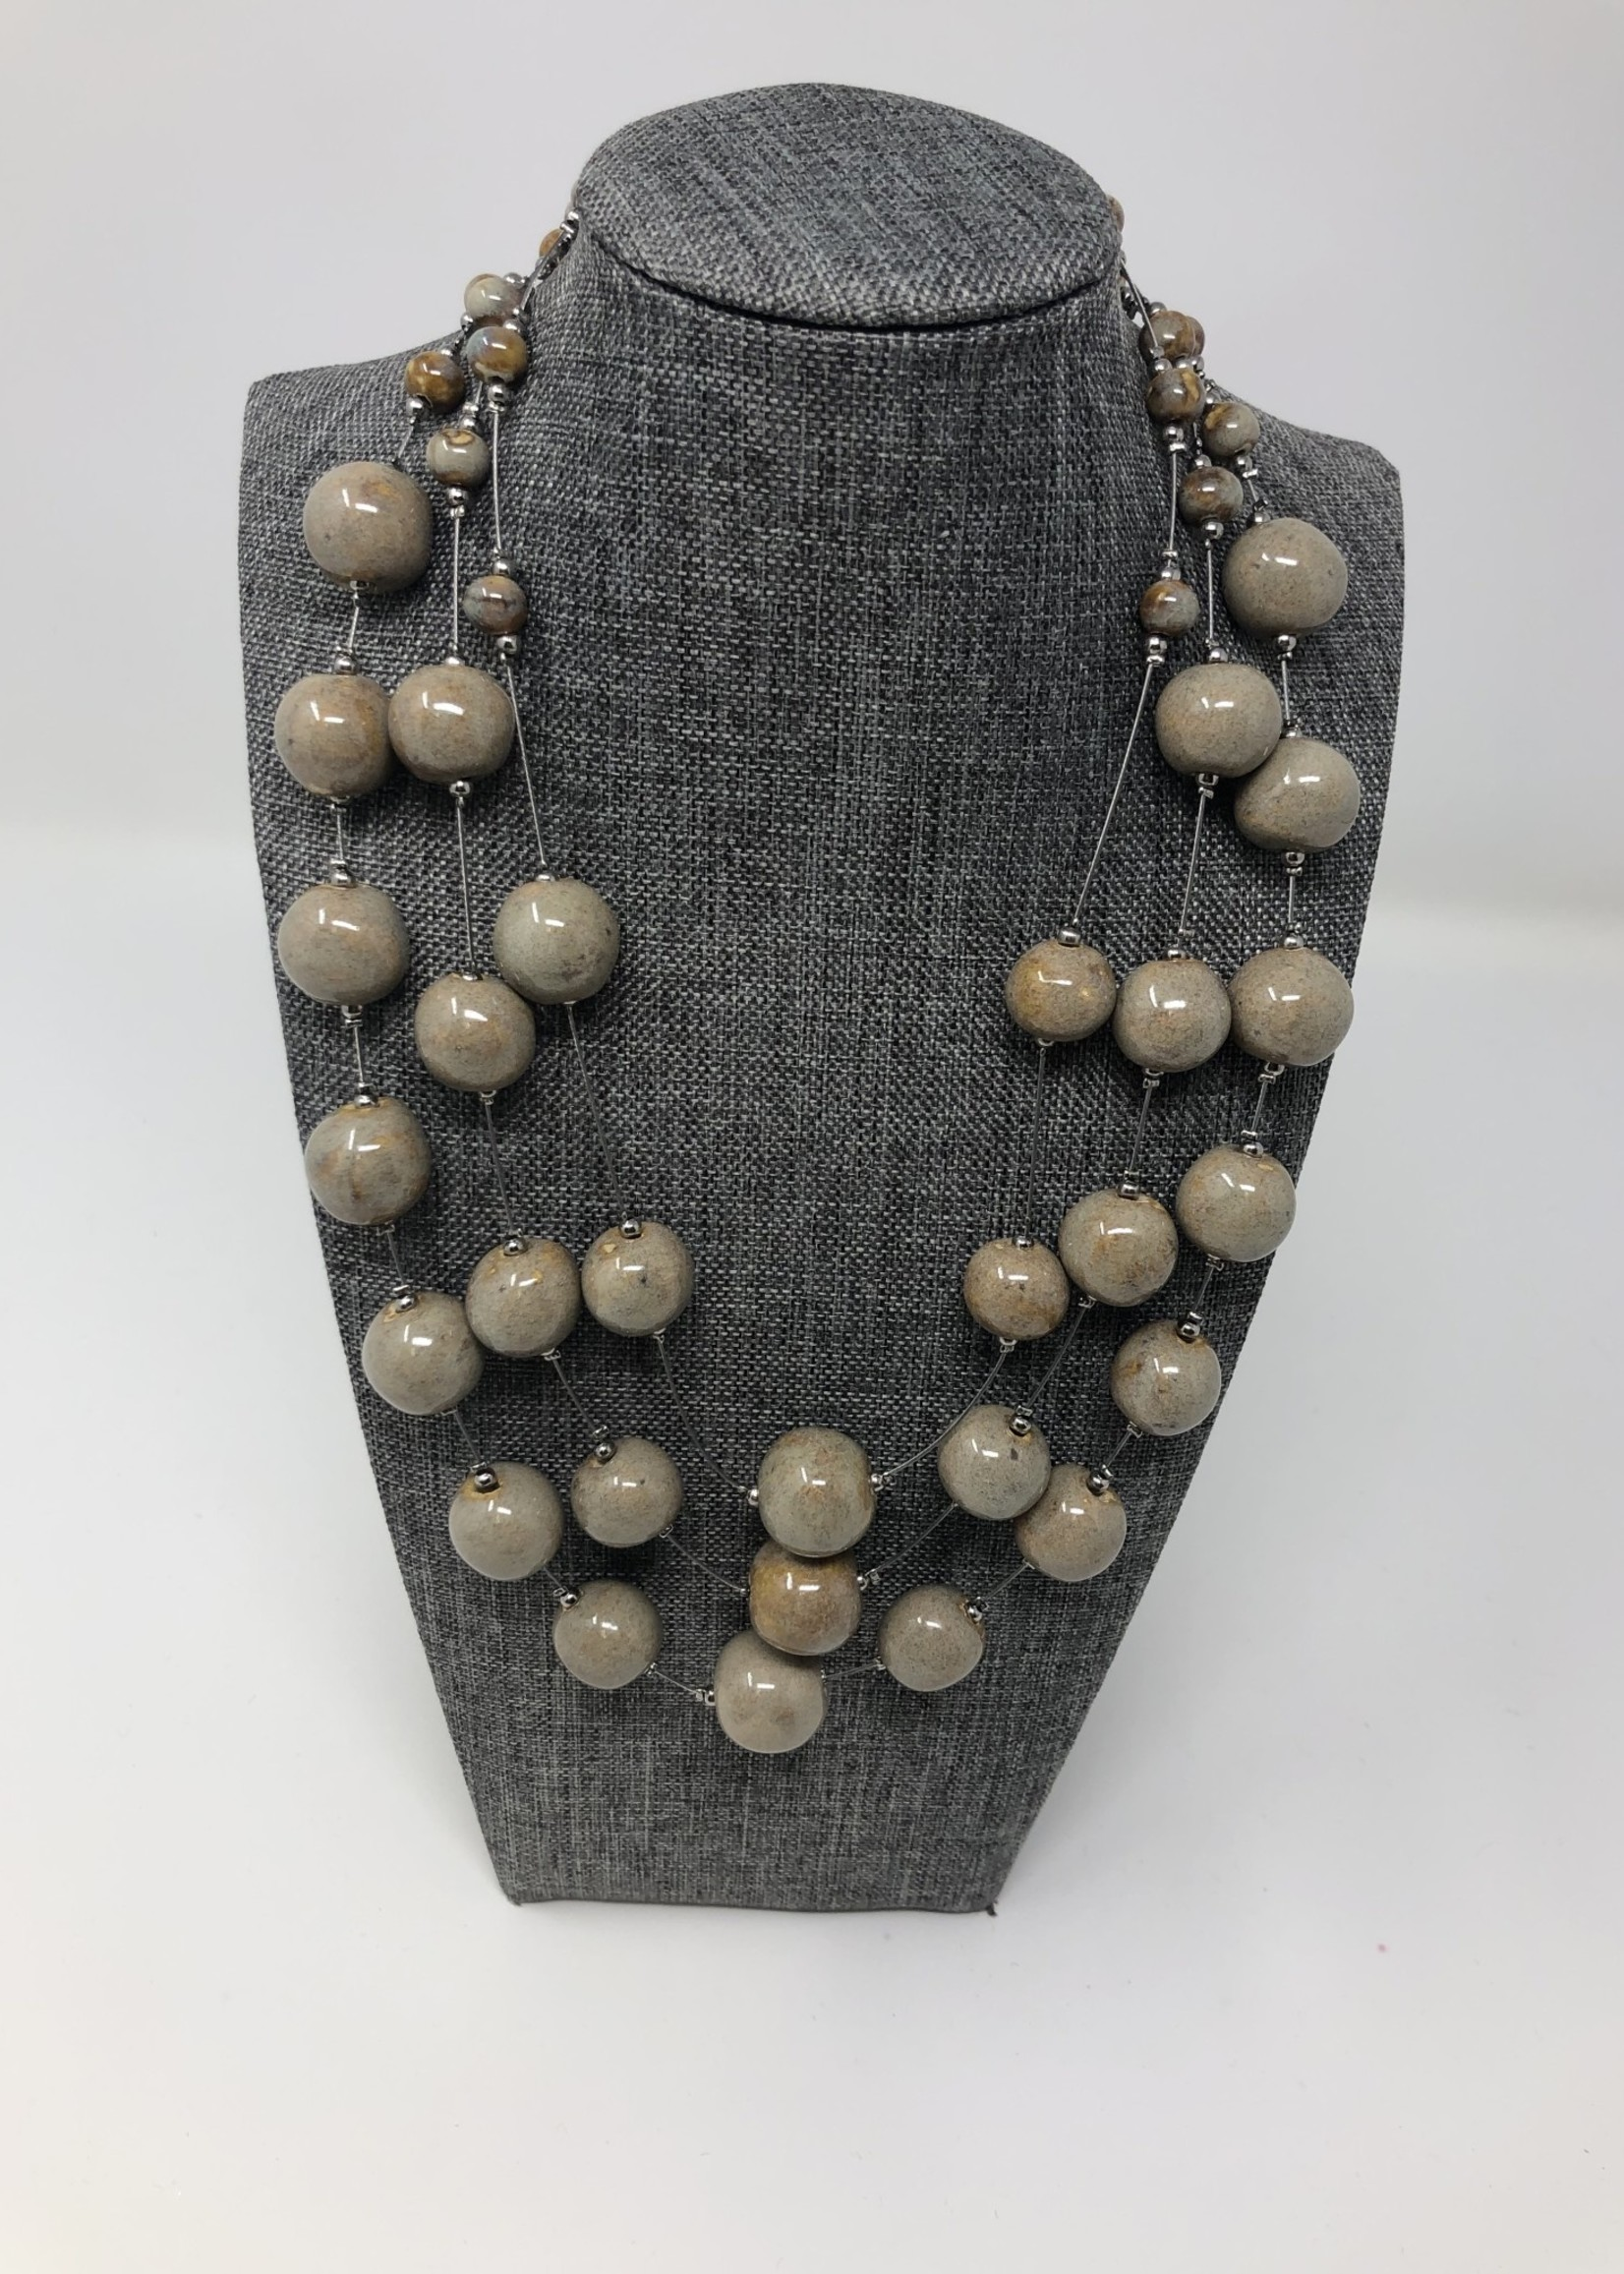 SKC 3 TIERED BEADED NECKLACE